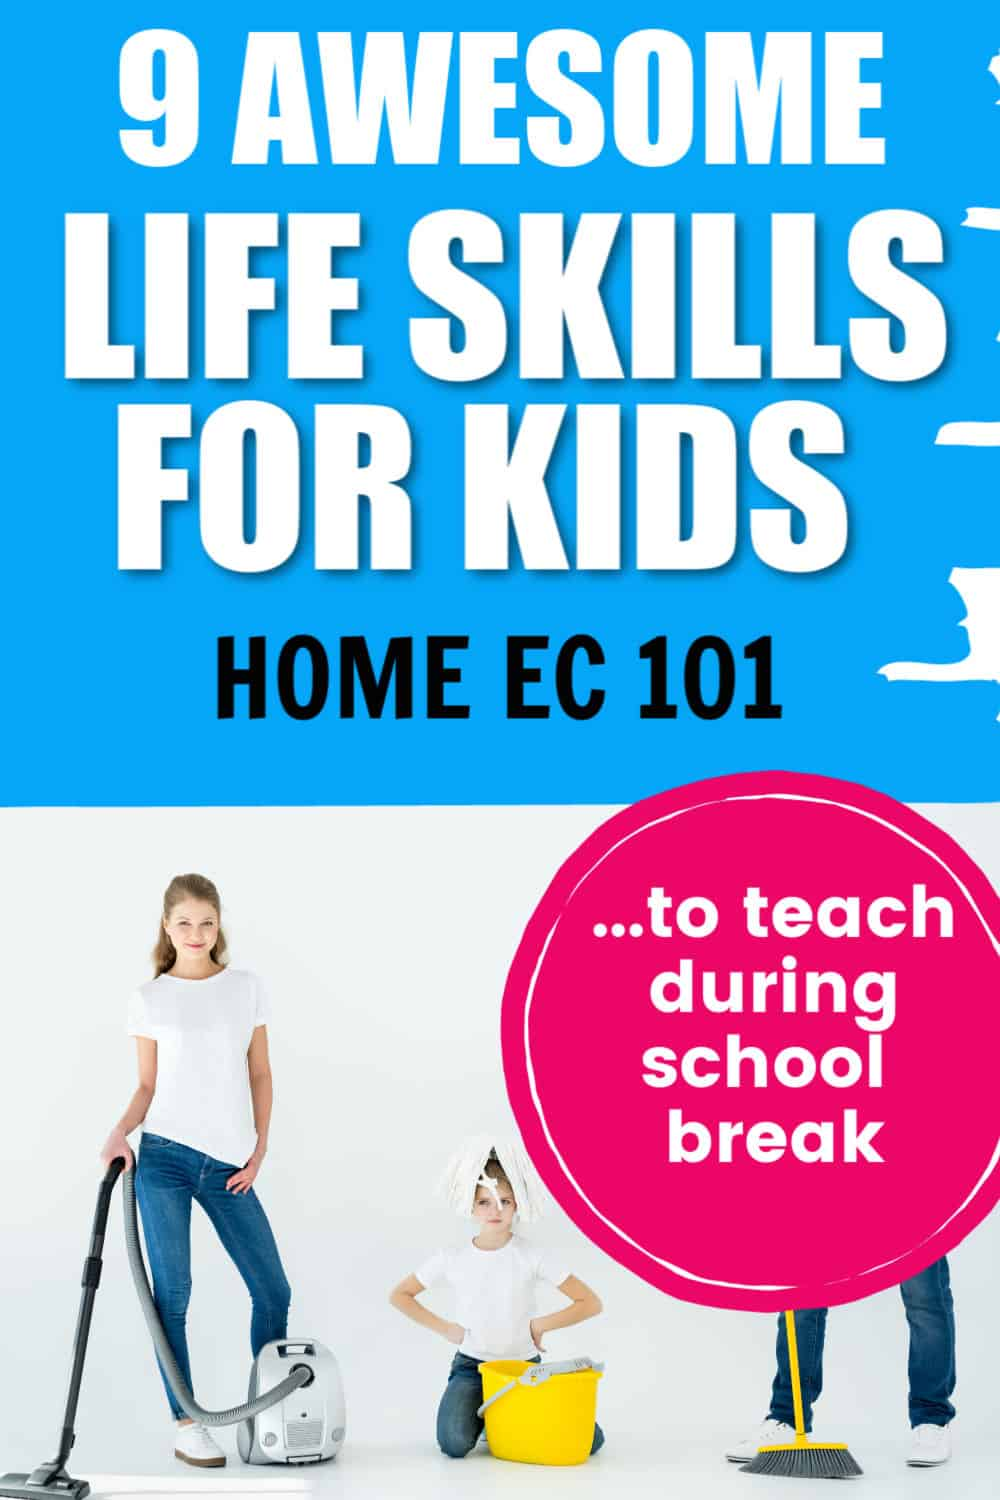 Life Skills for kids. We are trying to teach kids to be productive members of society so we need to make sure to teach these home ec skills whenever we can. Life skills for kids.